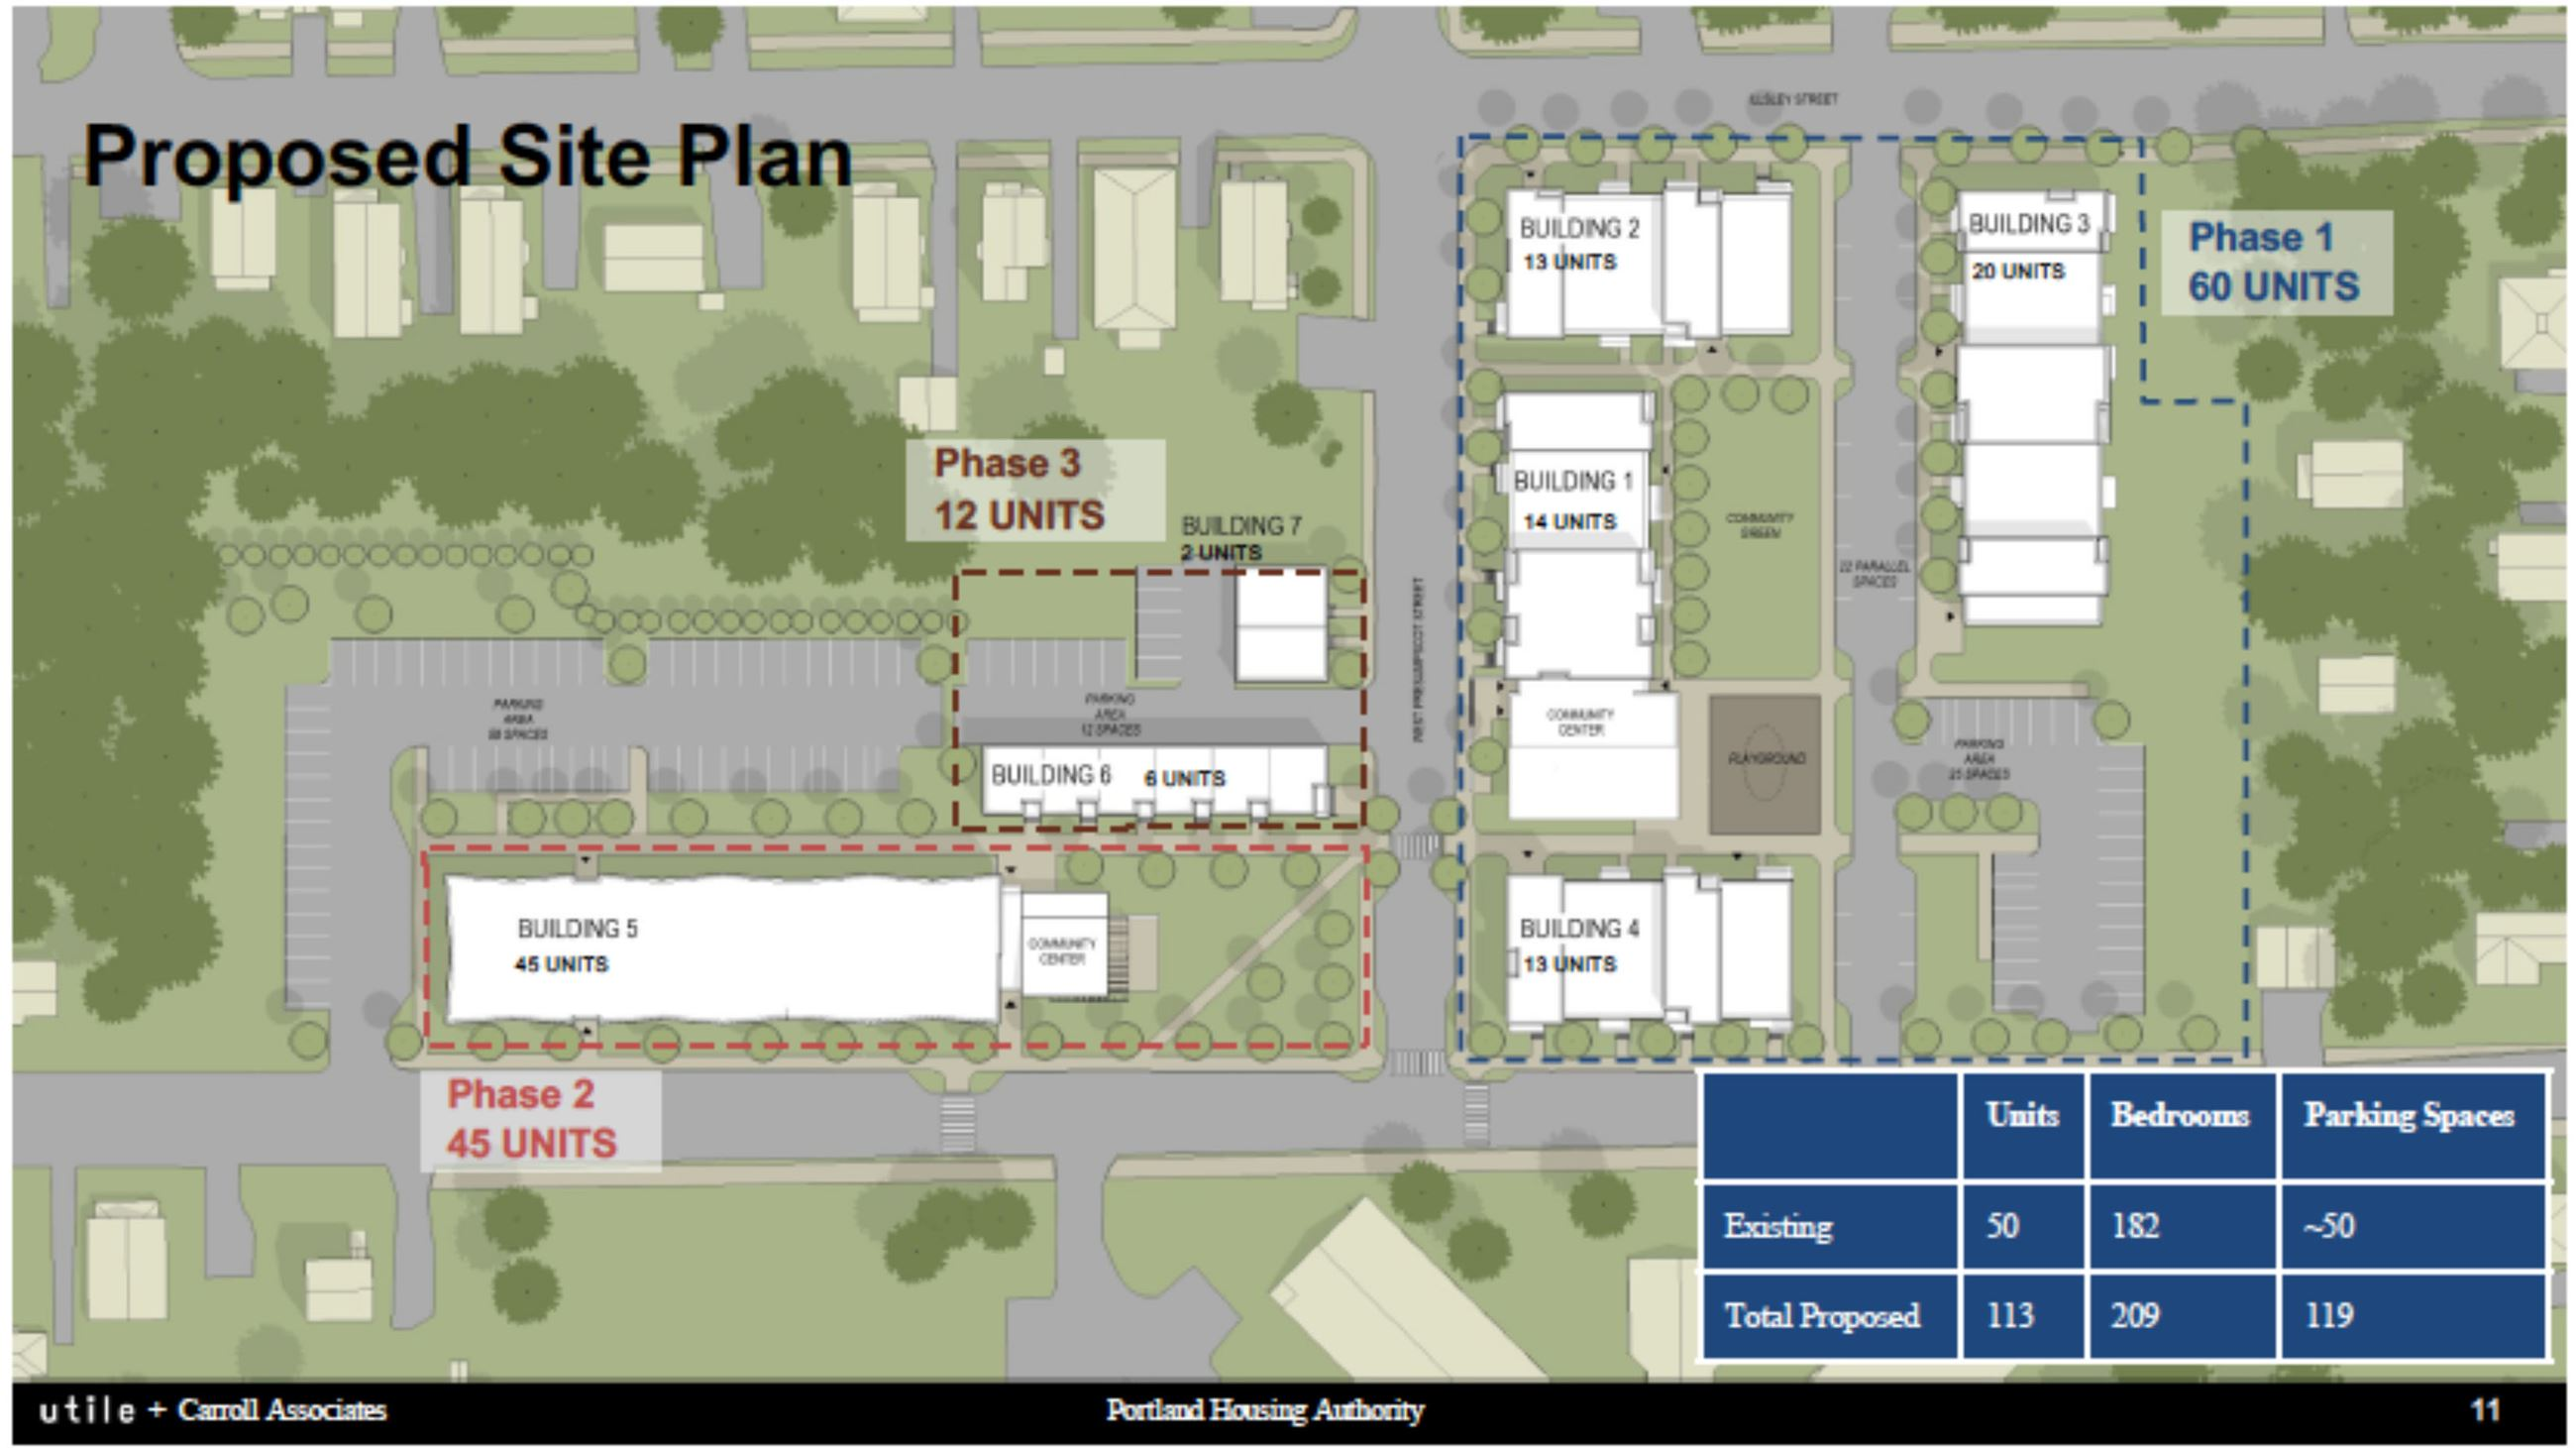 Front Street Proposed Site Plan Image